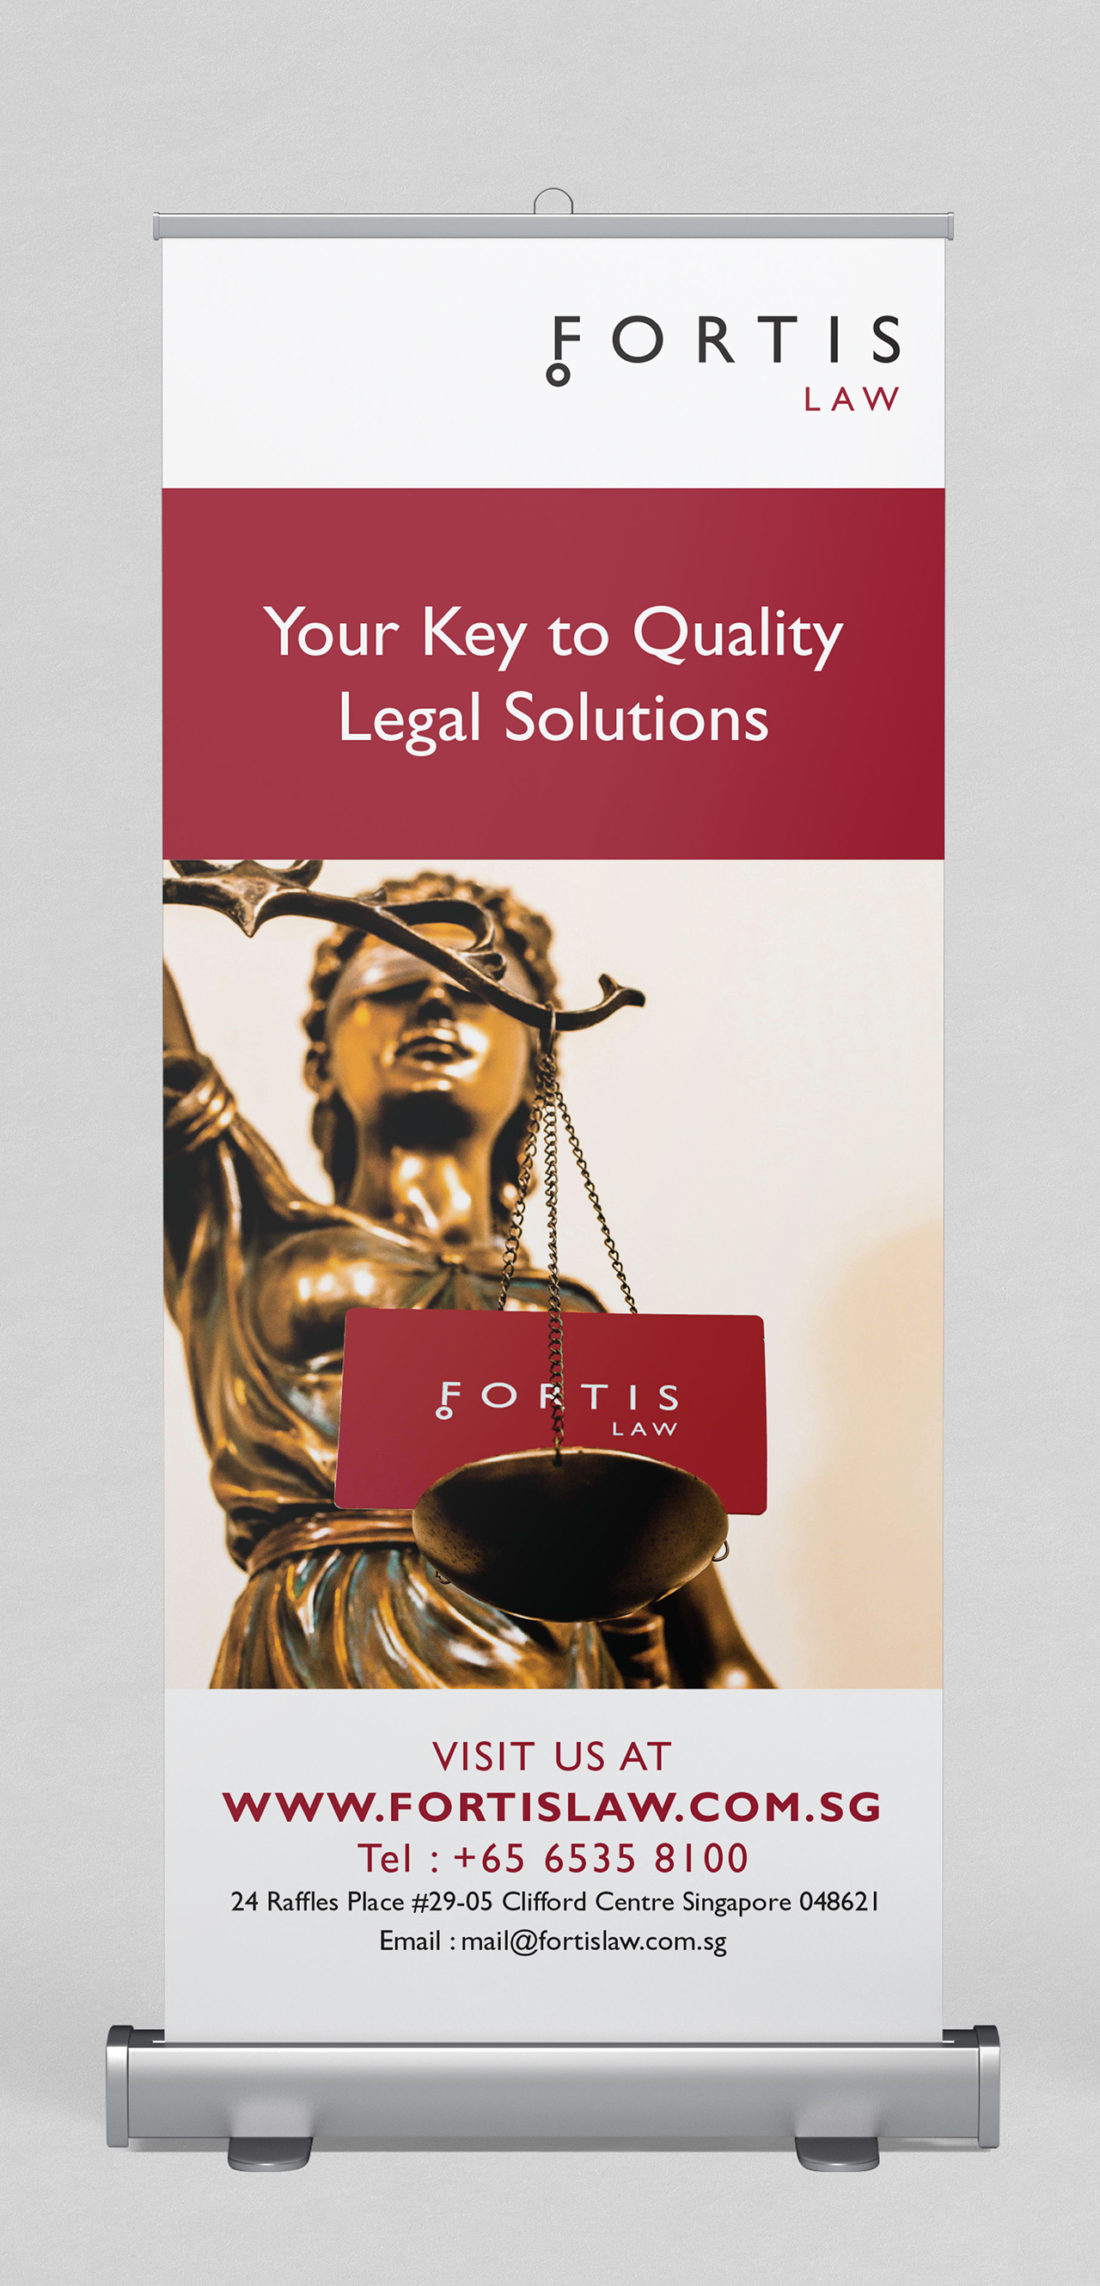 Fortis Law standee design